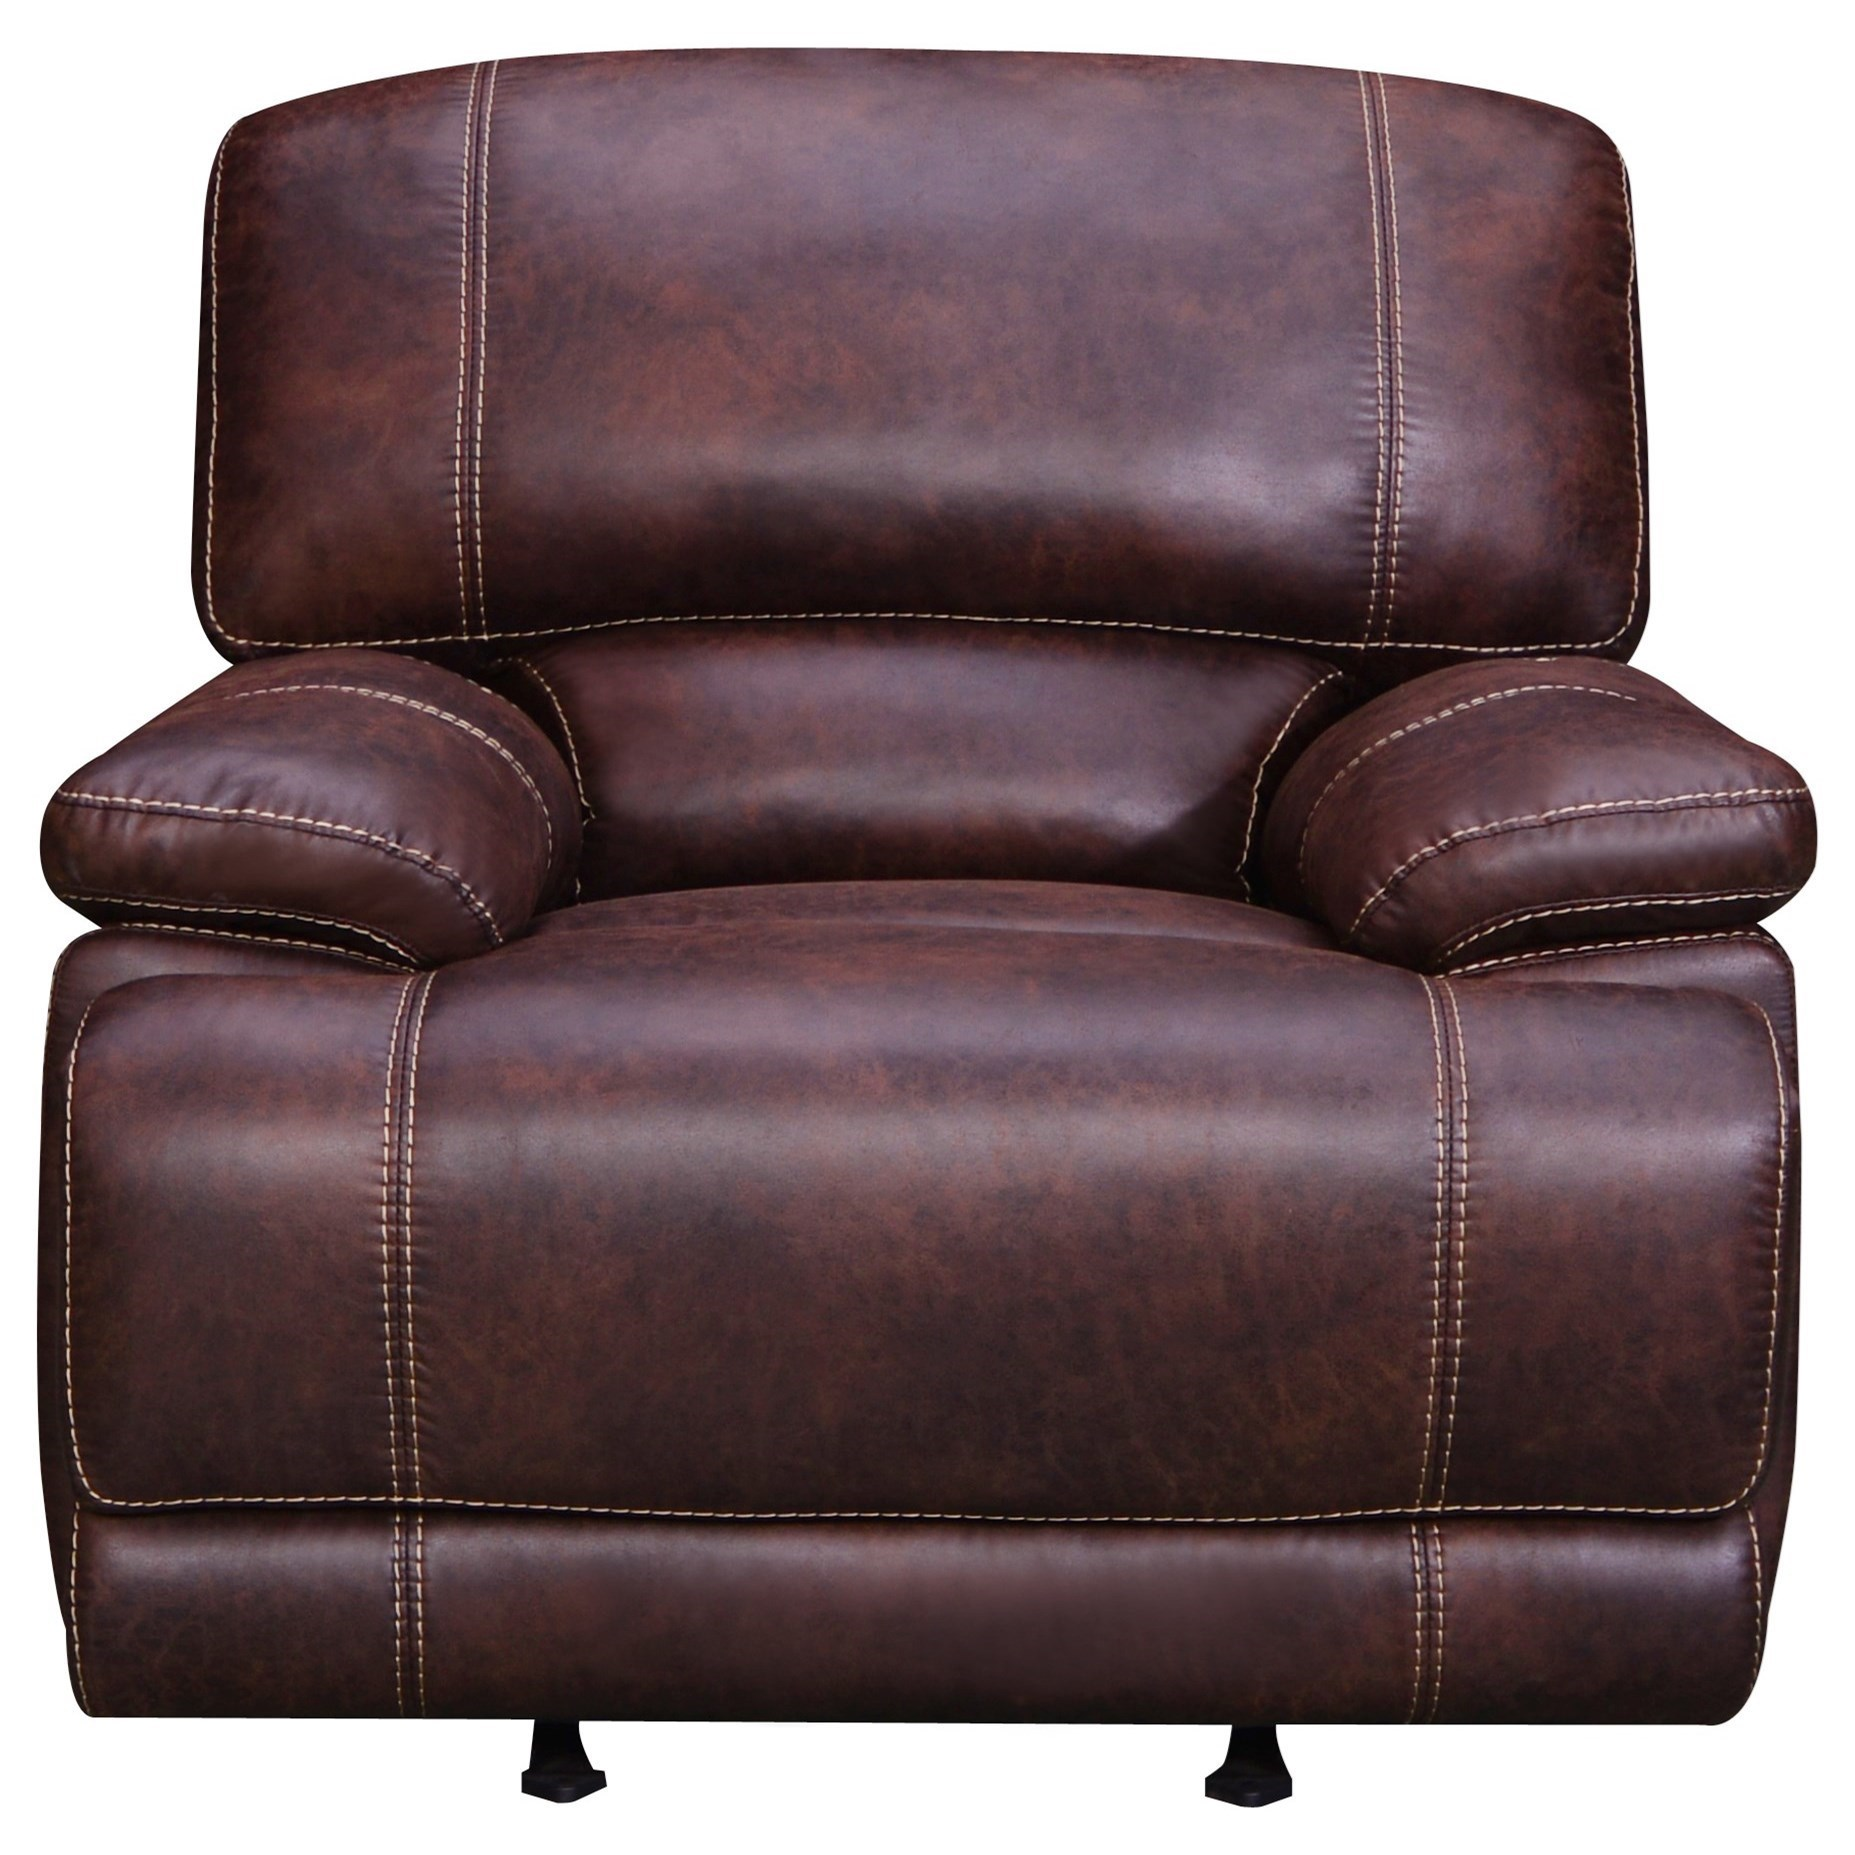 glider recliner chair office dimensions klaussner international foster royal fosterglider